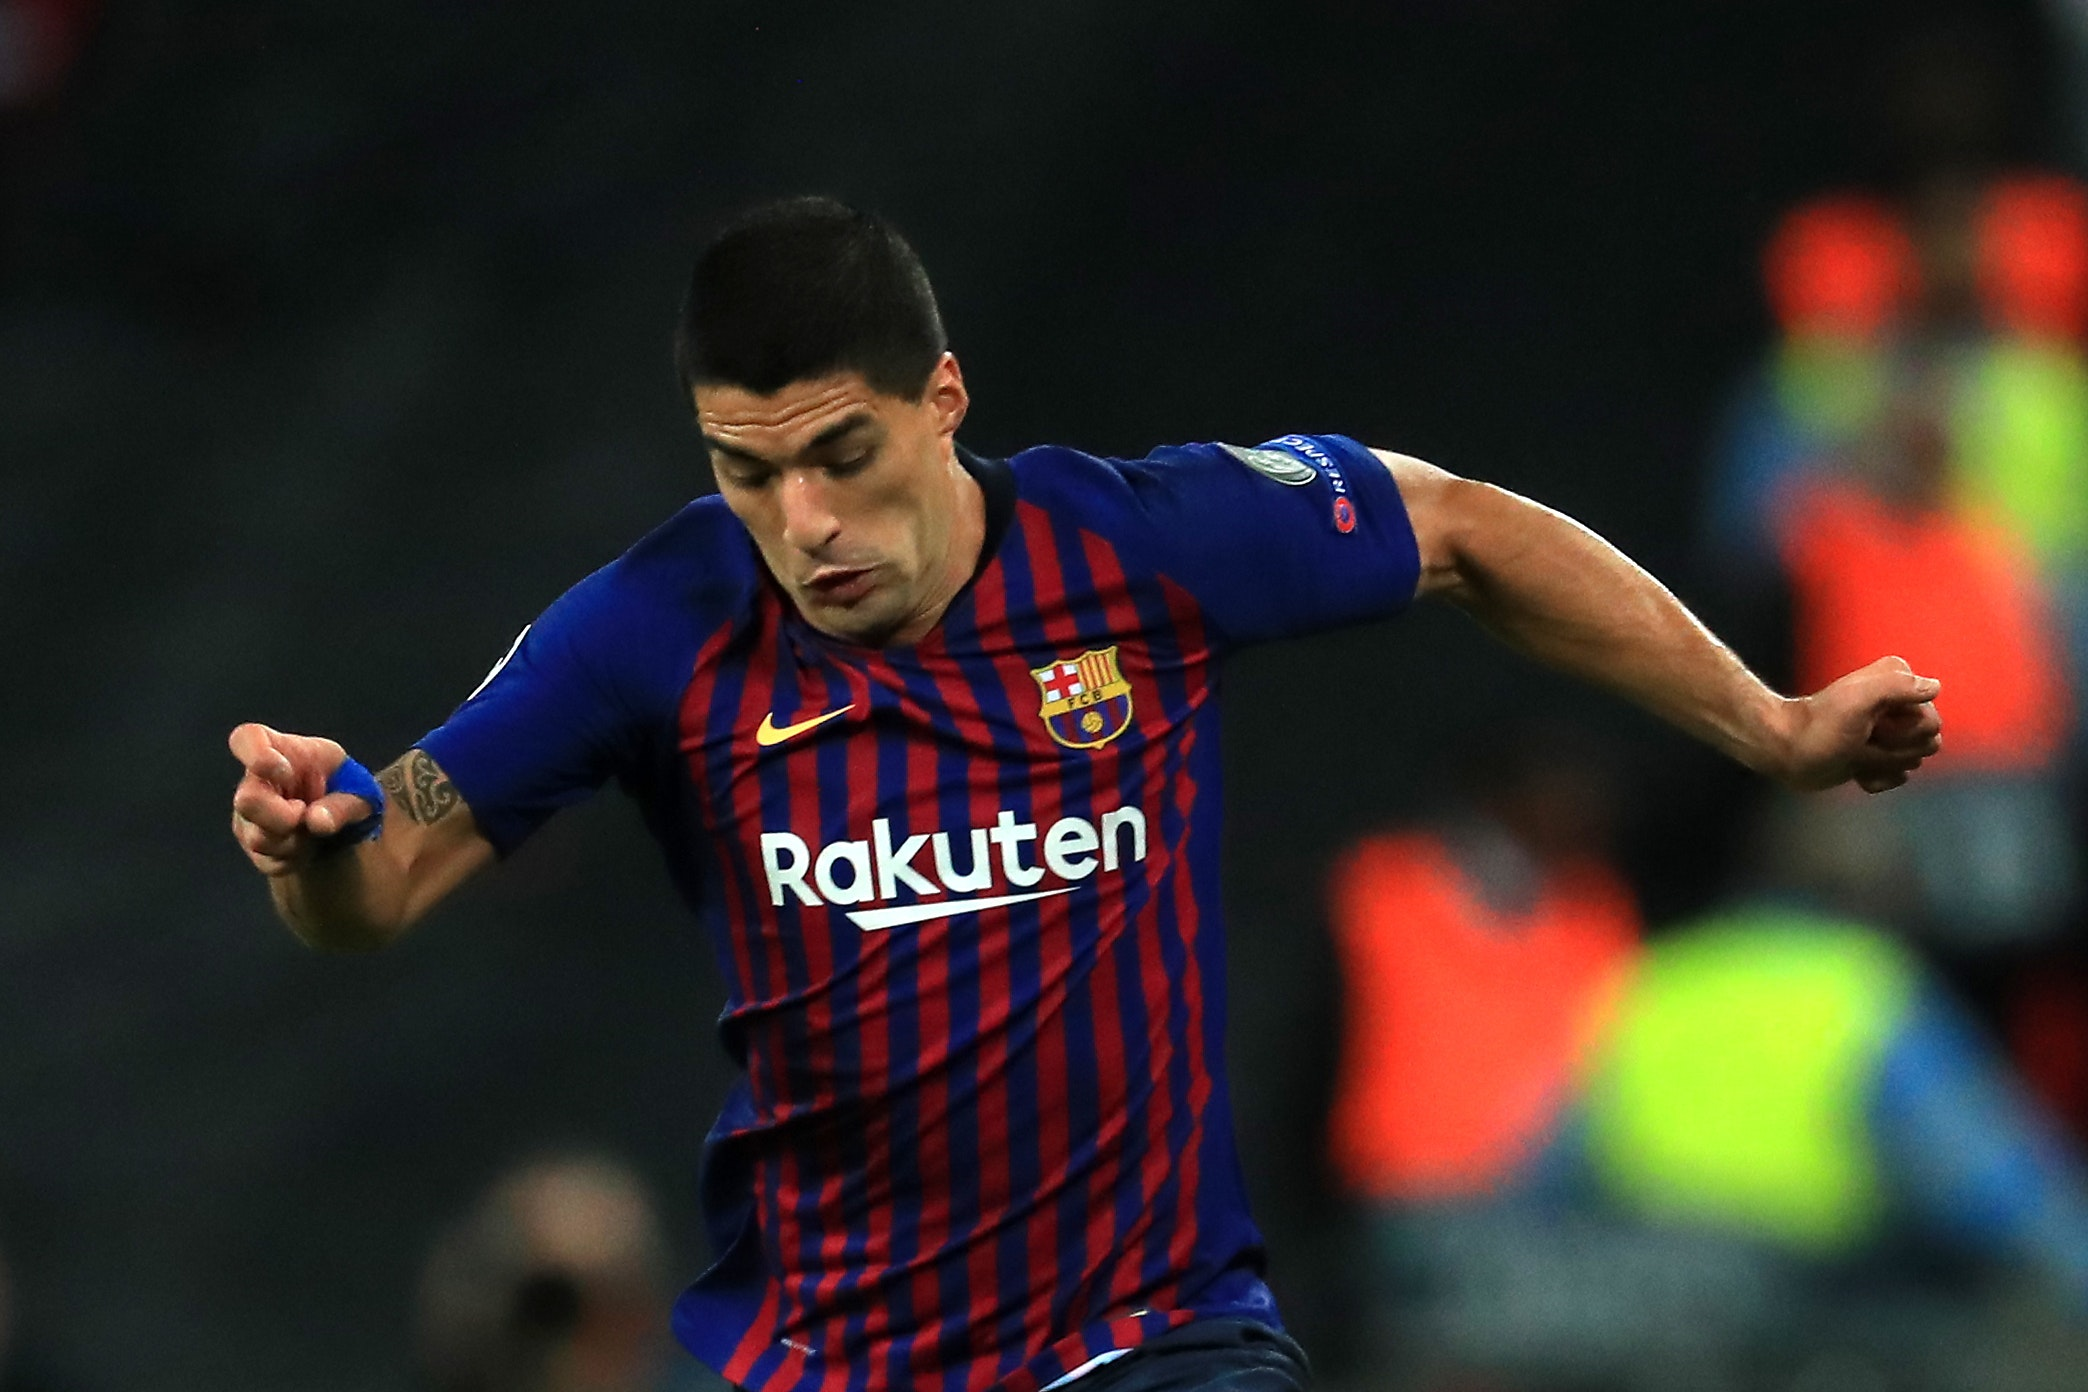 Barcelona signed Luis Suarez after delaying sanctions in appealing against a transfer ban